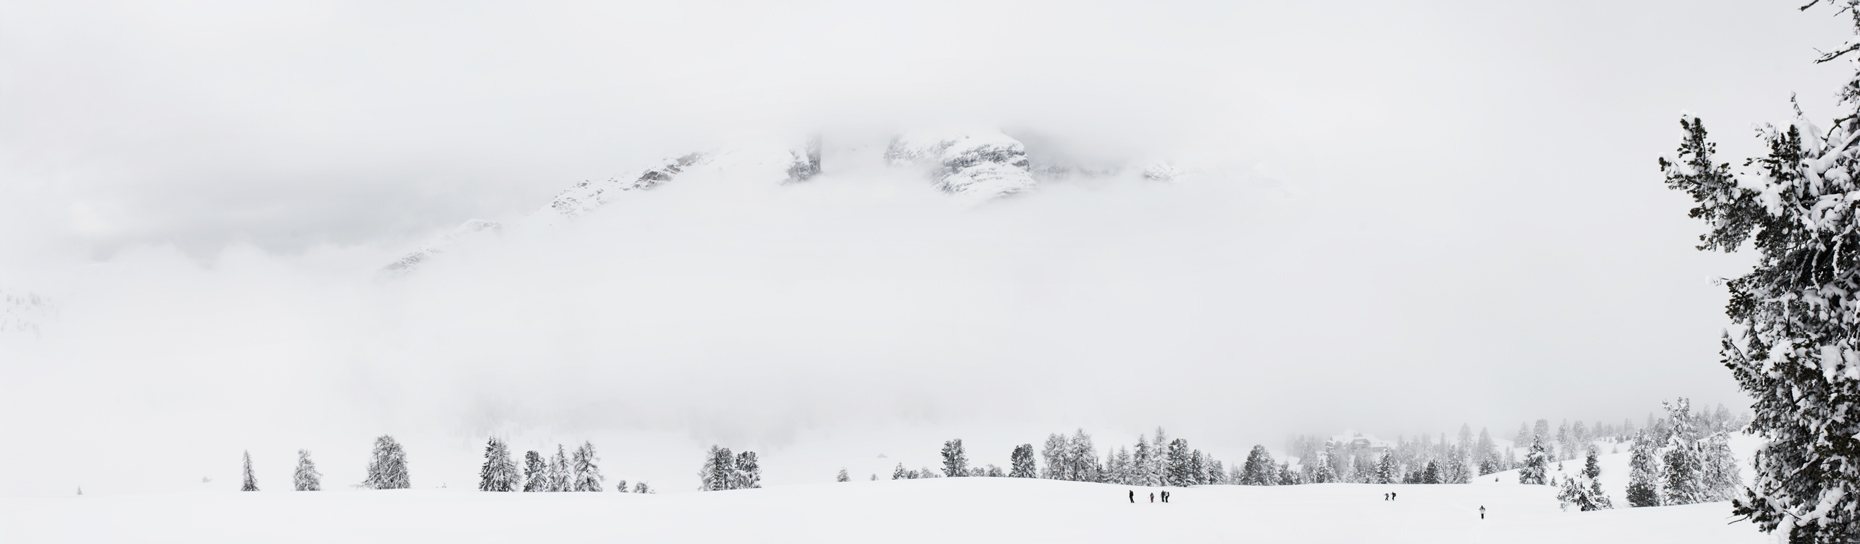 Jon Wyatt Photography - Walkers in snow with cloudy mountains, Italy